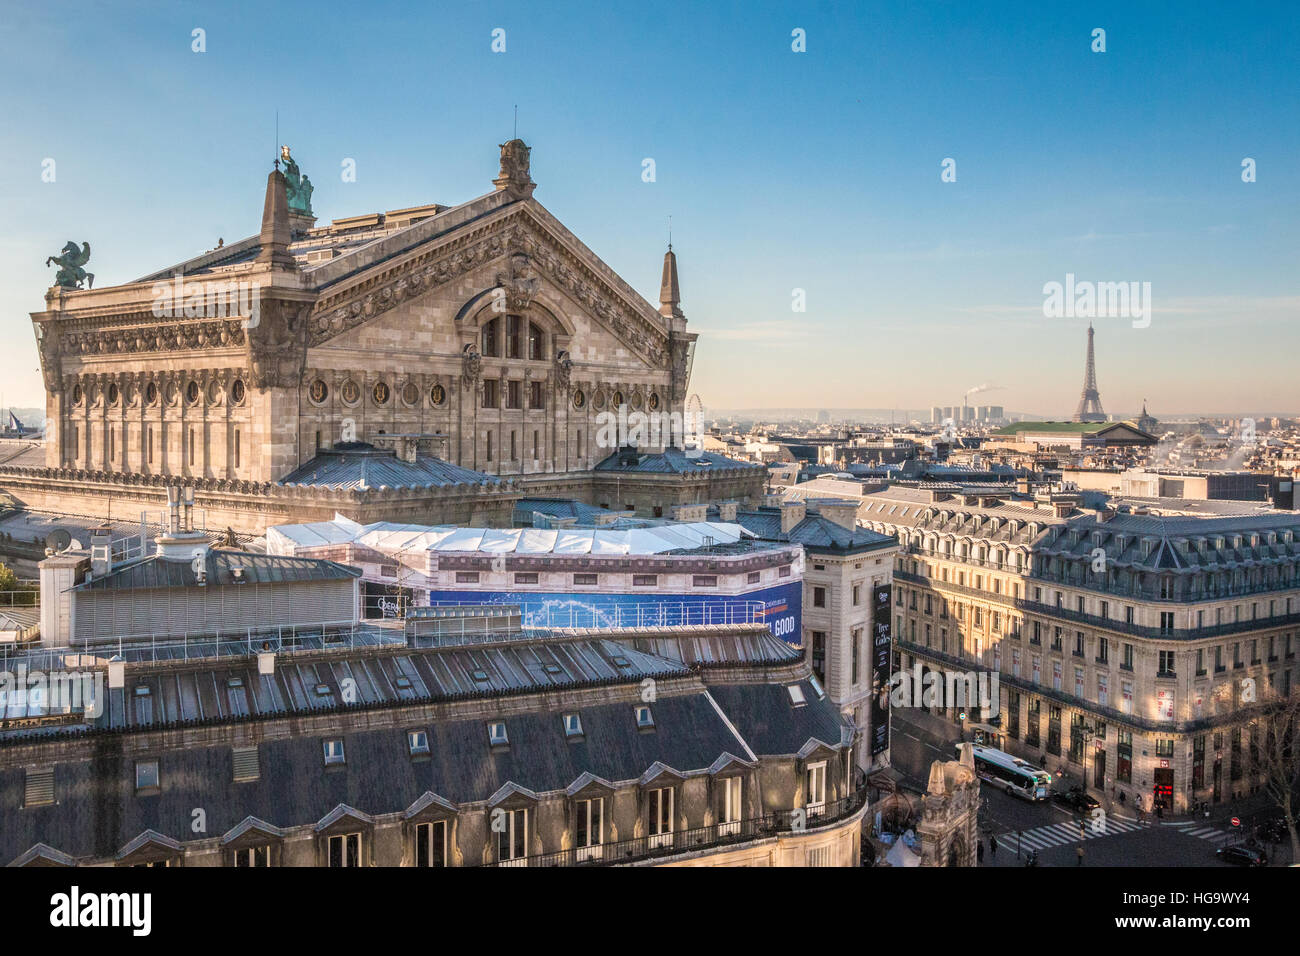 View of Paris Opera - Stock Image